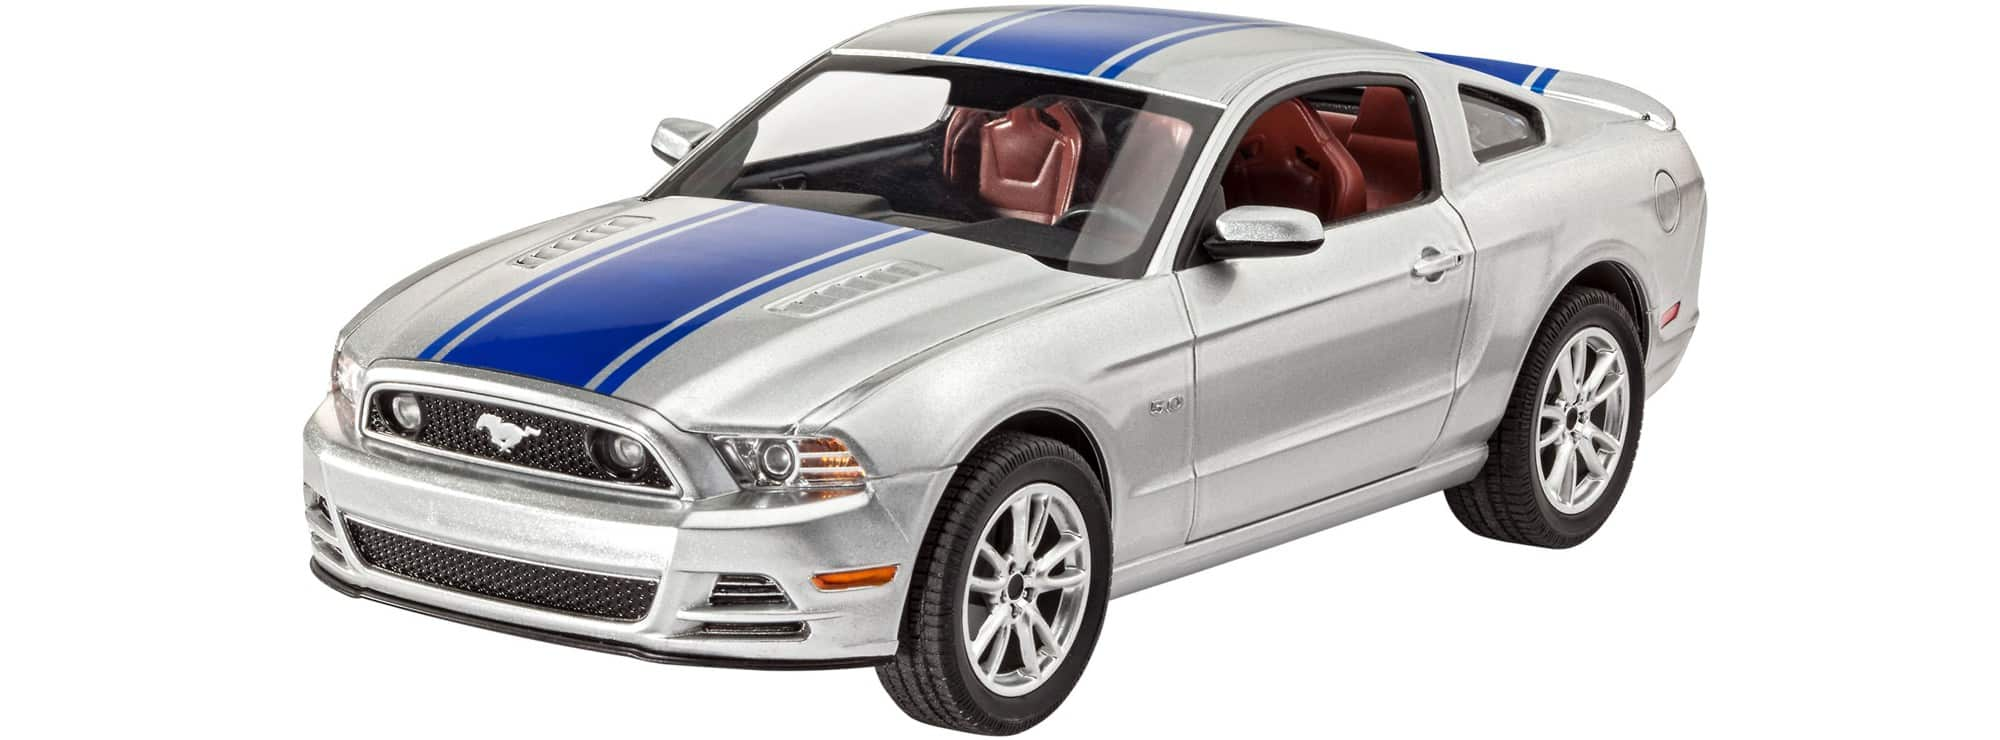 revell 07061 ford mustang gt 2014 auto bausatz 1 24 online kaufen bei modellbau h rtle. Black Bedroom Furniture Sets. Home Design Ideas